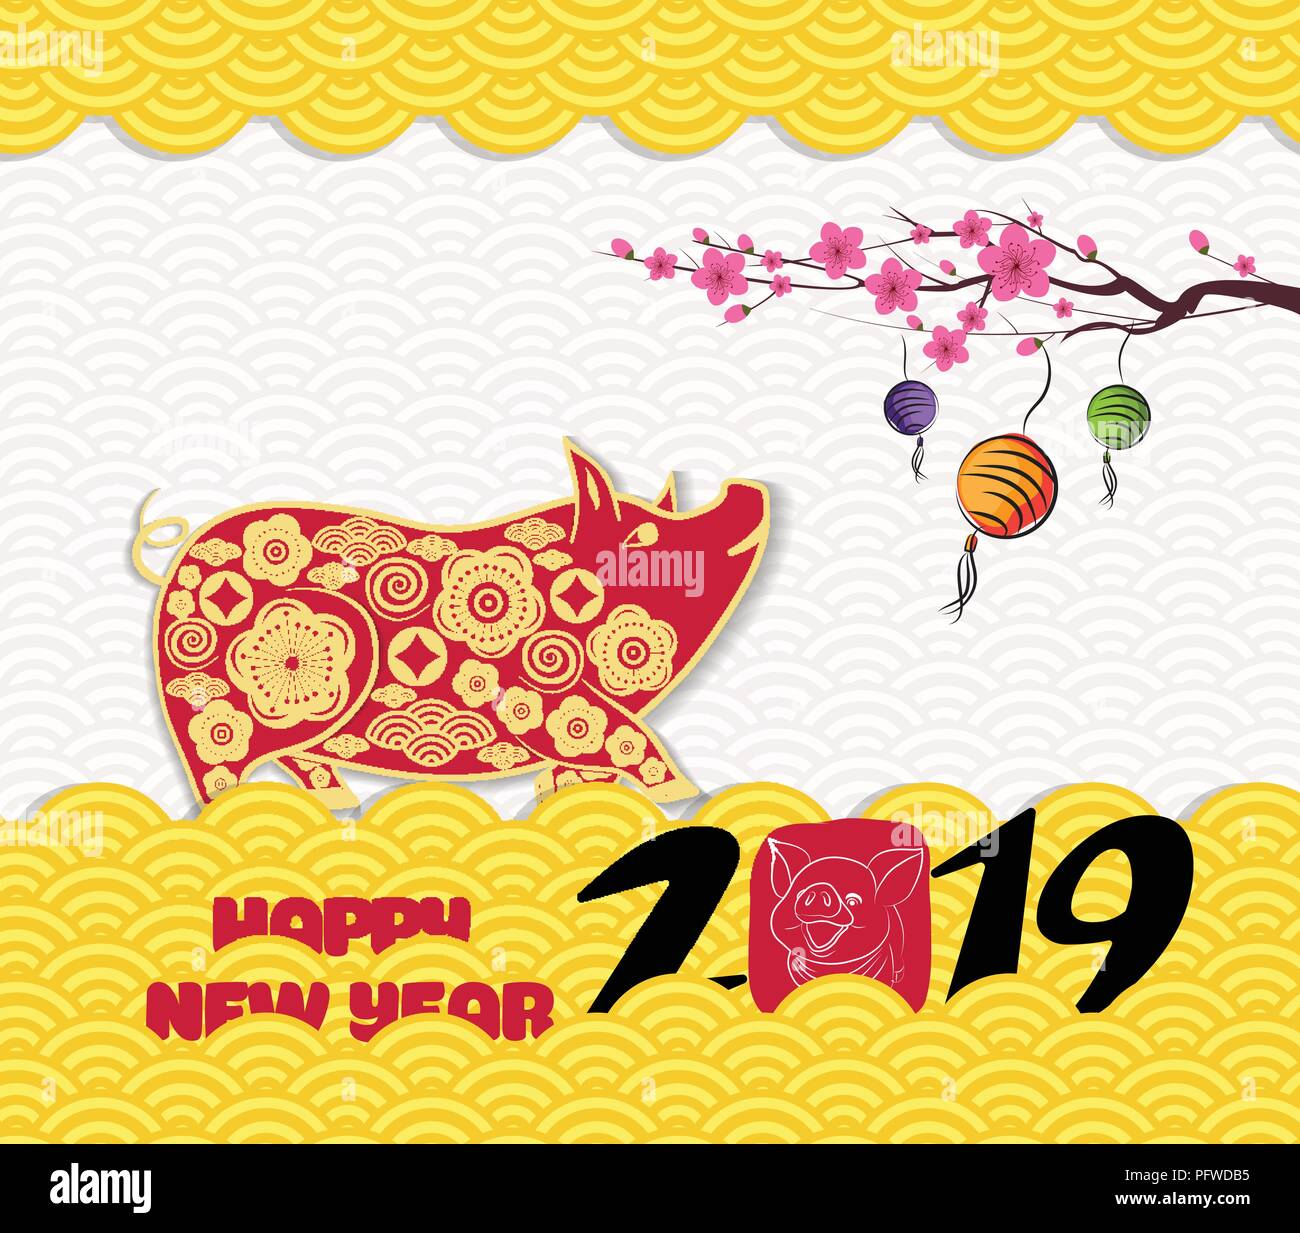 2019 chinese new year greeting card with traditionlal pattern border year of the pig